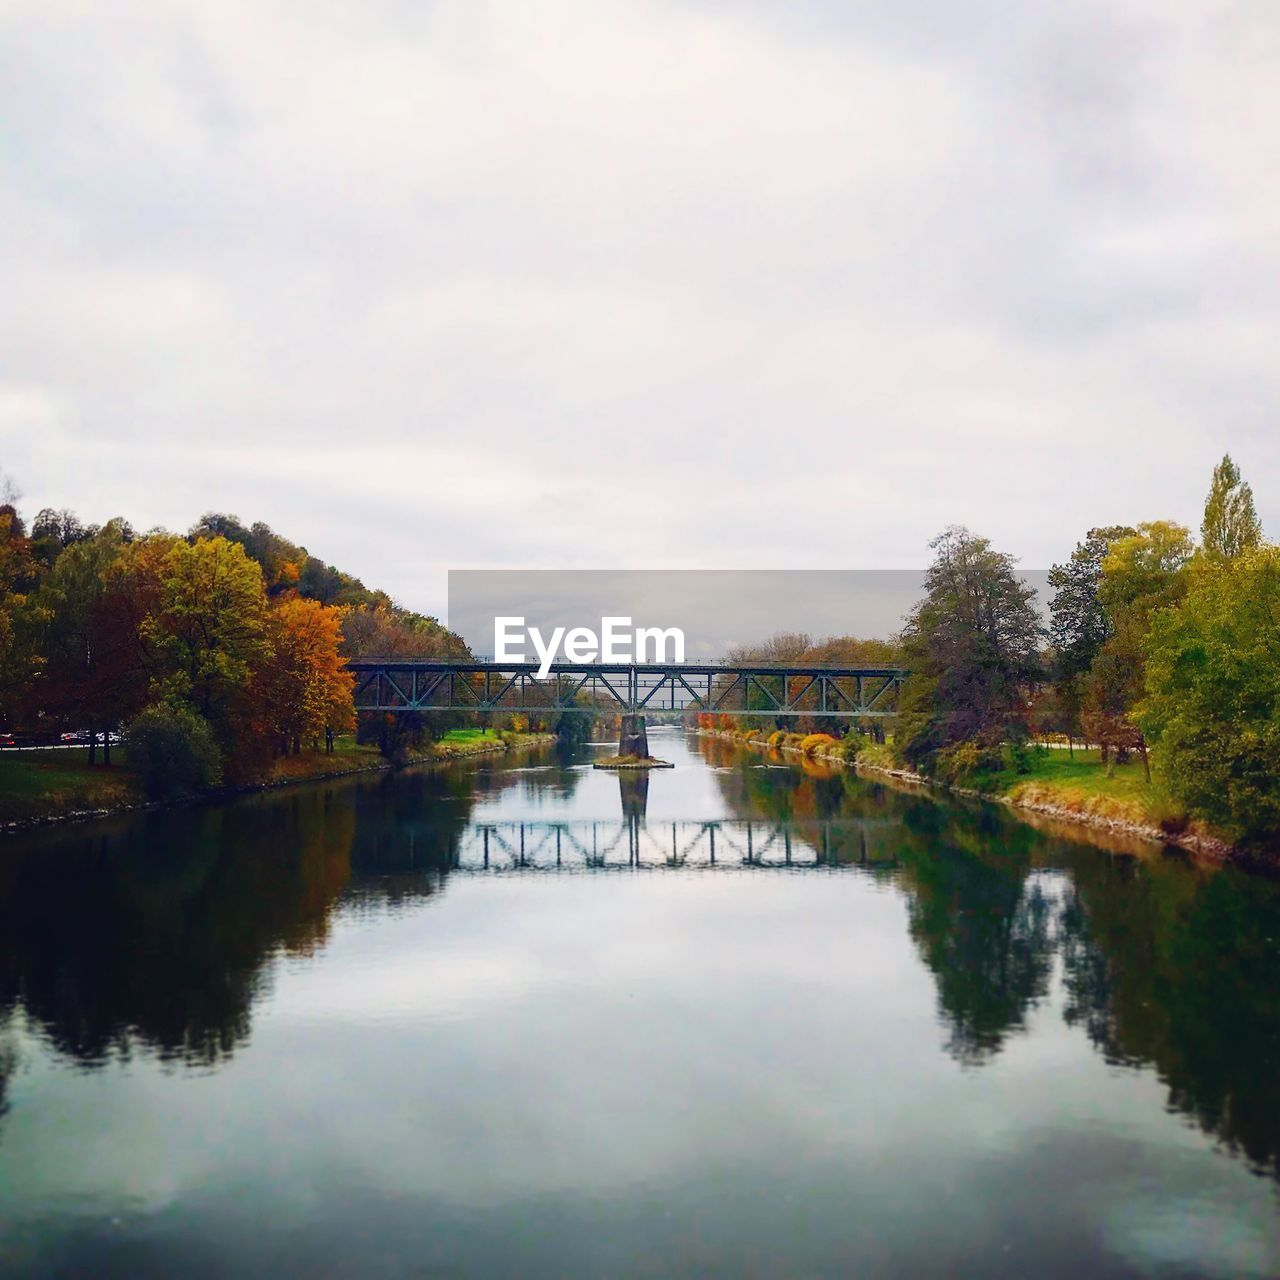 water, sky, tree, reflection, plant, cloud - sky, nature, beauty in nature, waterfront, bridge, tranquility, autumn, no people, connection, architecture, built structure, tranquil scene, scenics - nature, day, bridge - man made structure, outdoors, change